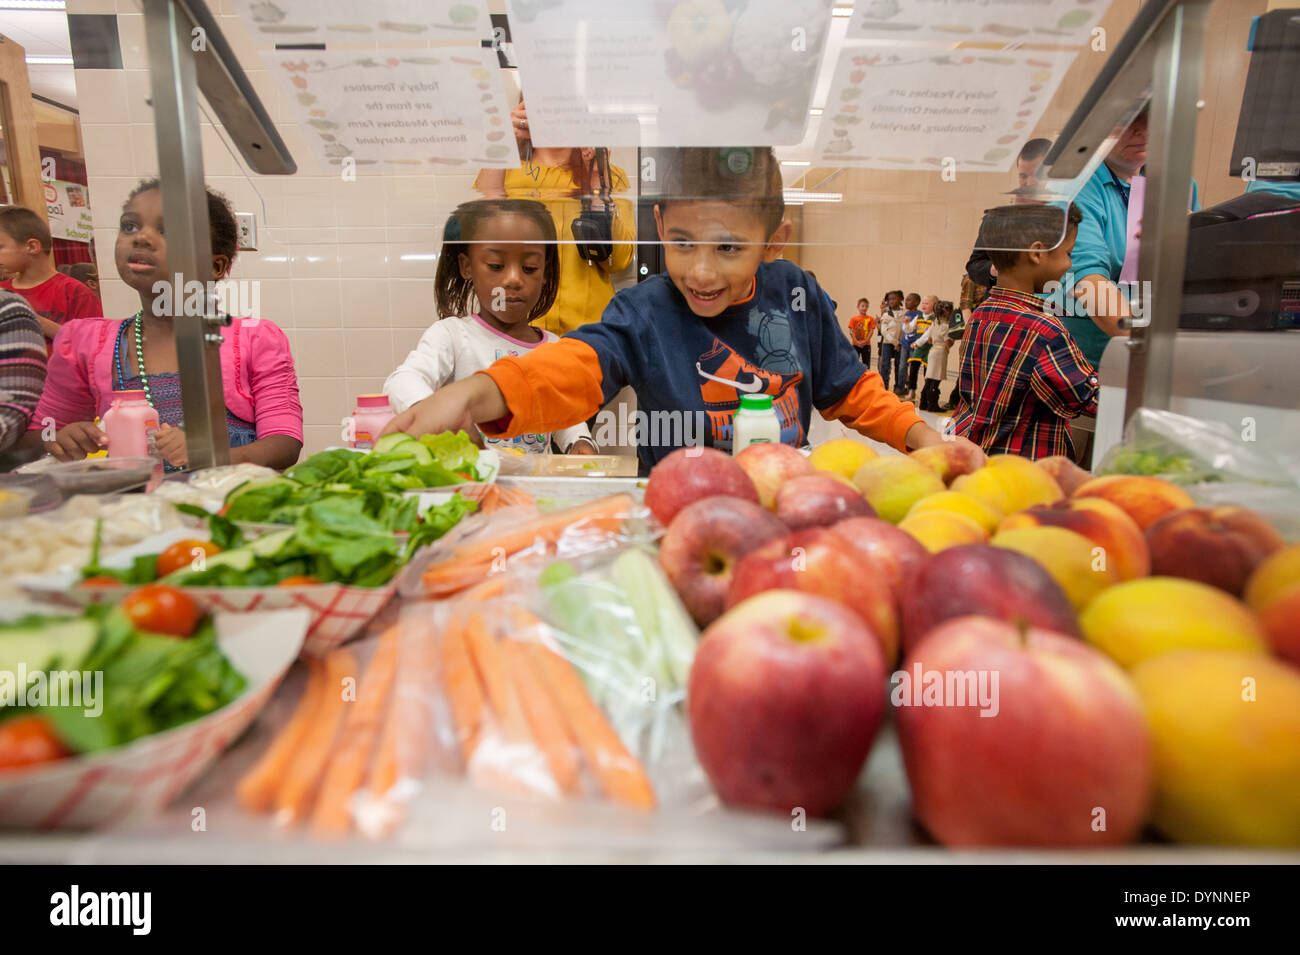 healthy nutrition for elementary school students Healthy nutrition for elementary school students healthy kids learn better healthy kids go to school, pay attention, can have better test scores and are more likely to succeed.